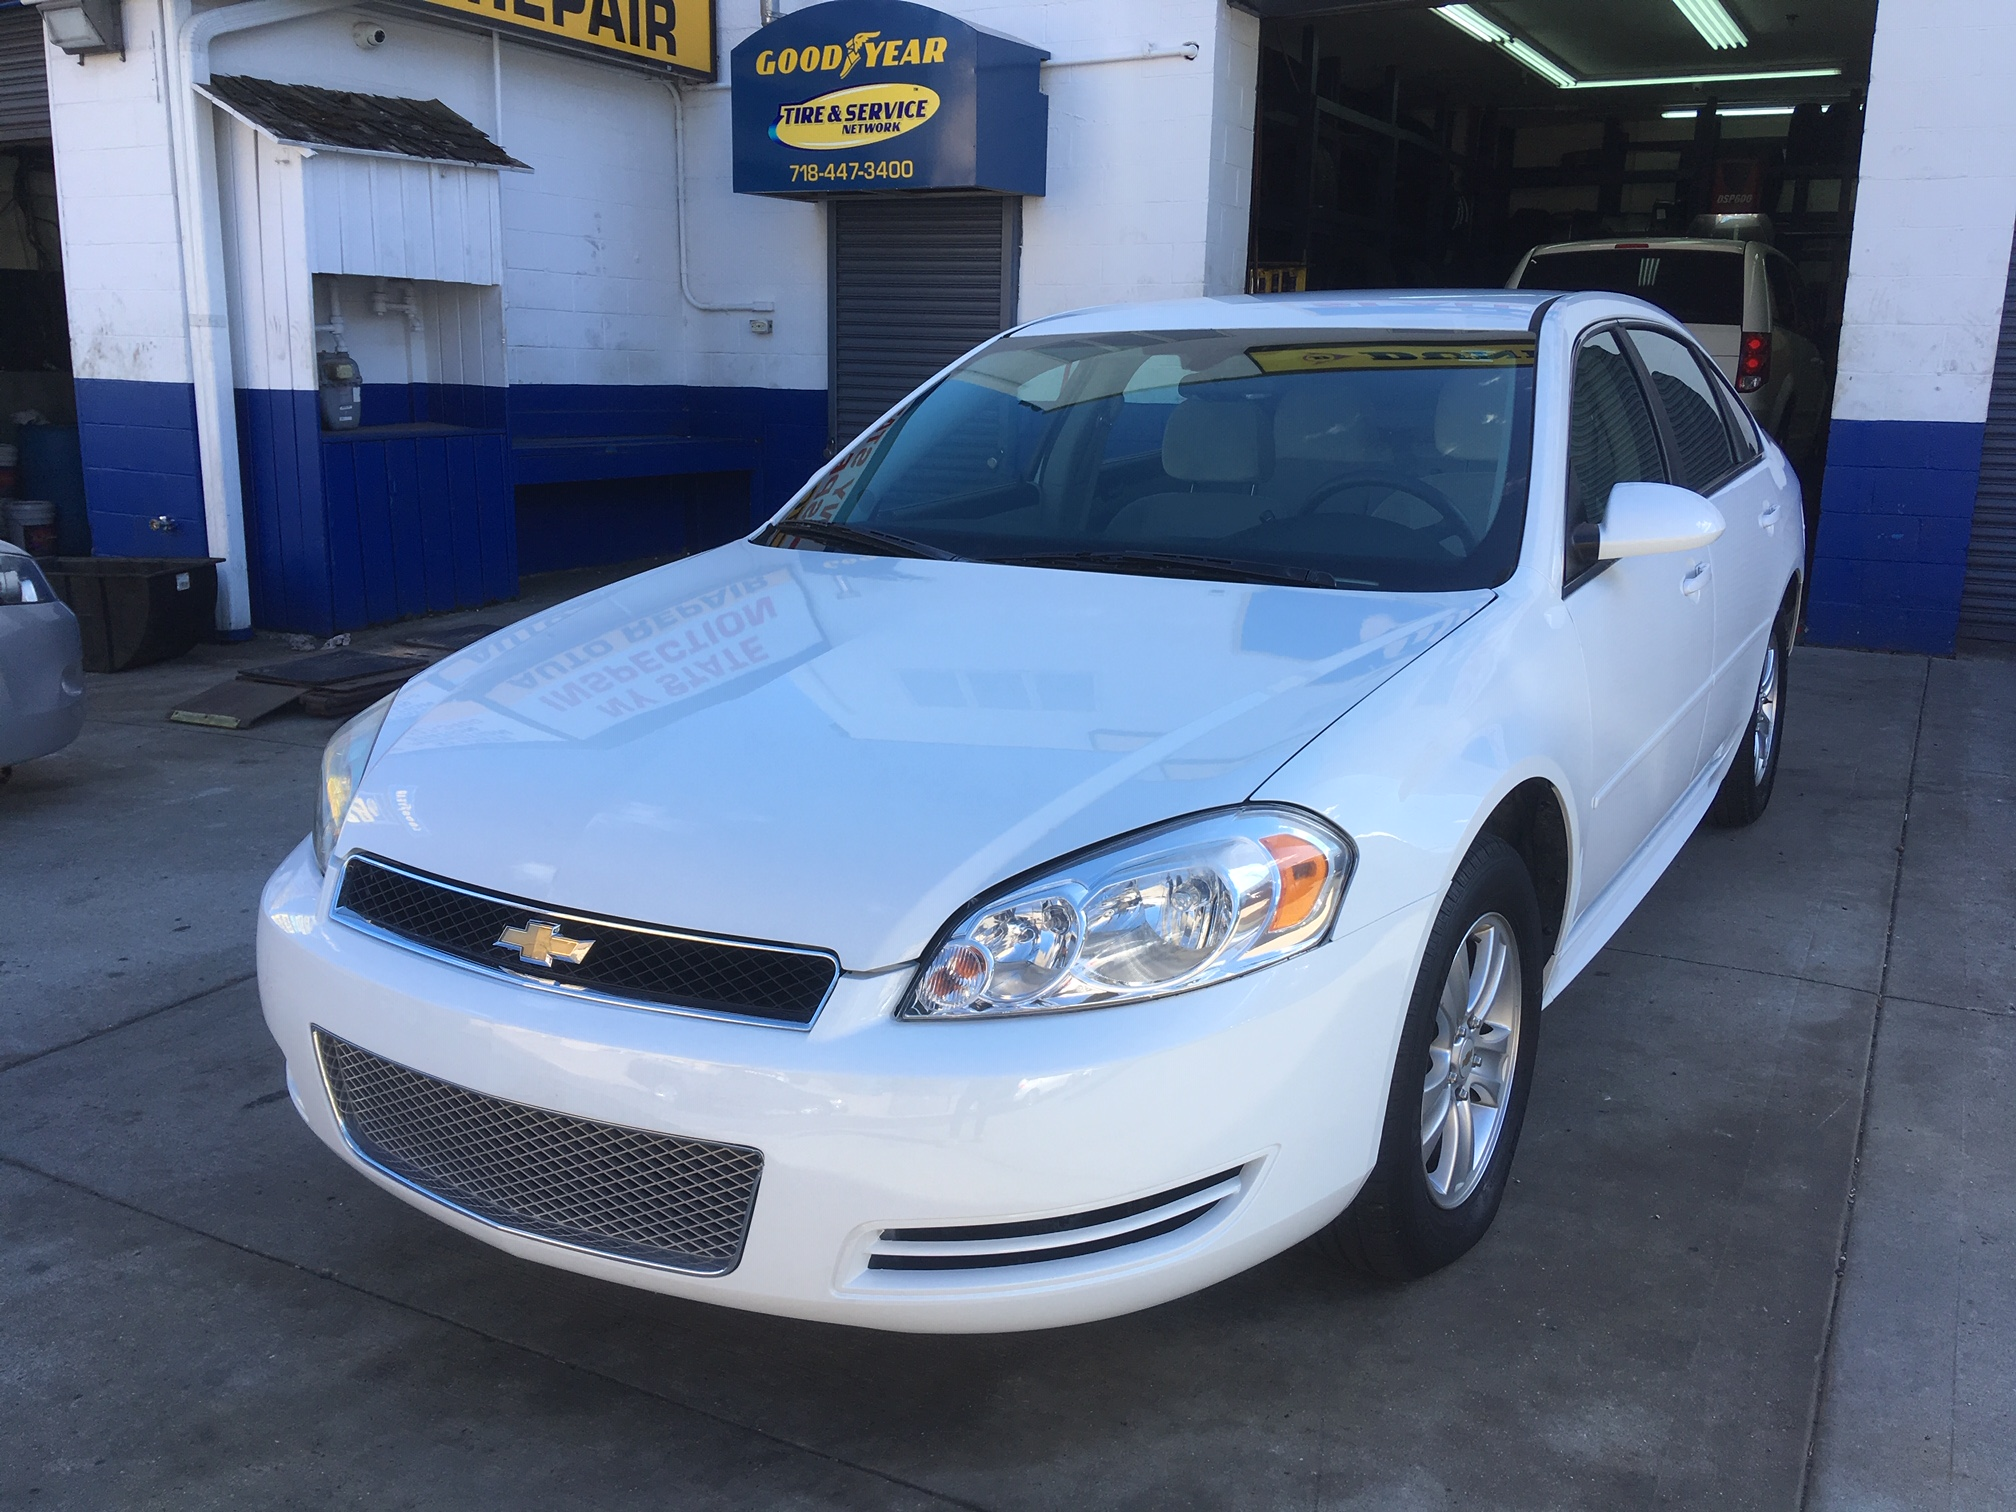 Used Car - 2012 Chevrolet Impala LS for Sale in Staten Island, NY